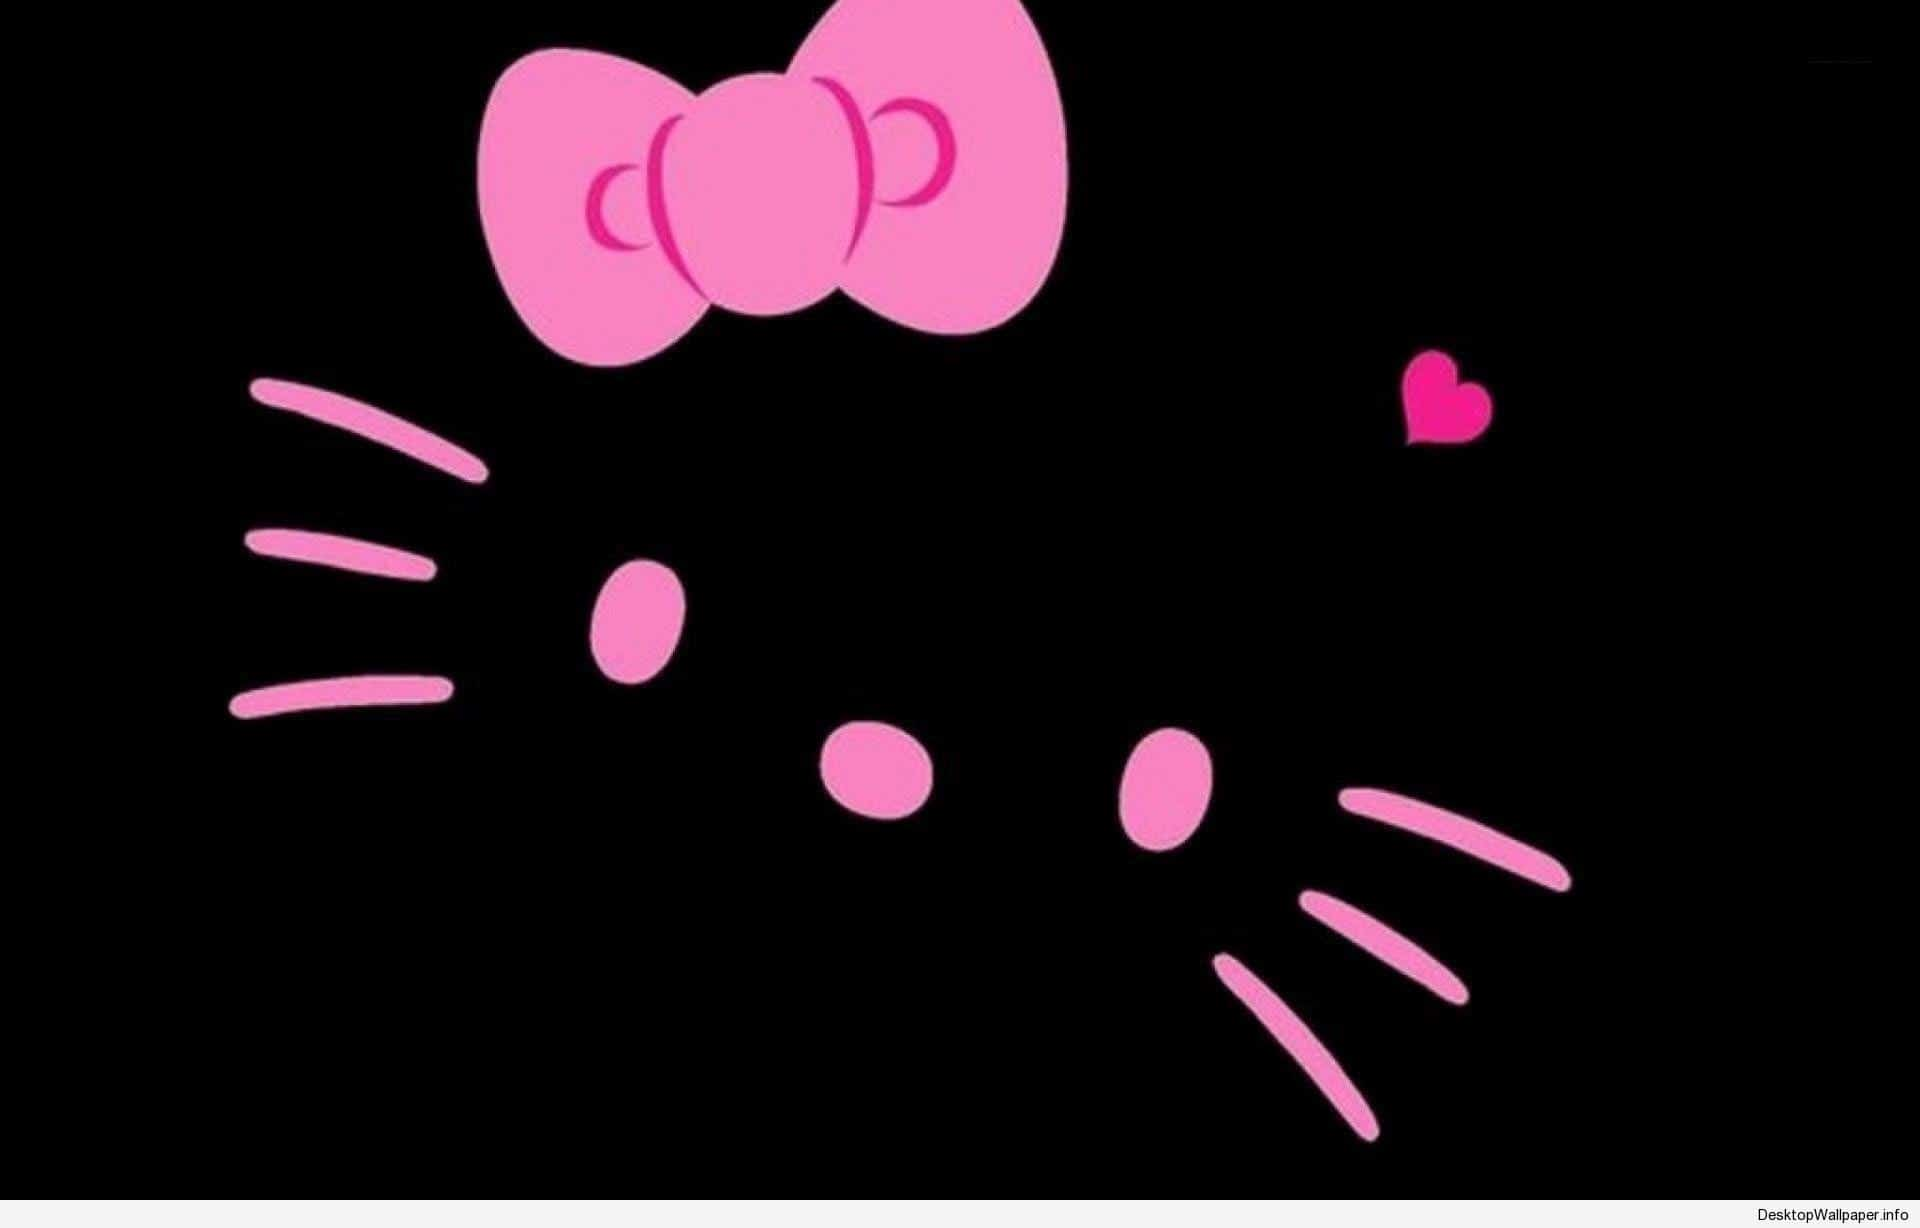 Black Hello Kitty Wallpapers   Top Black Hello Kitty 1920x1228